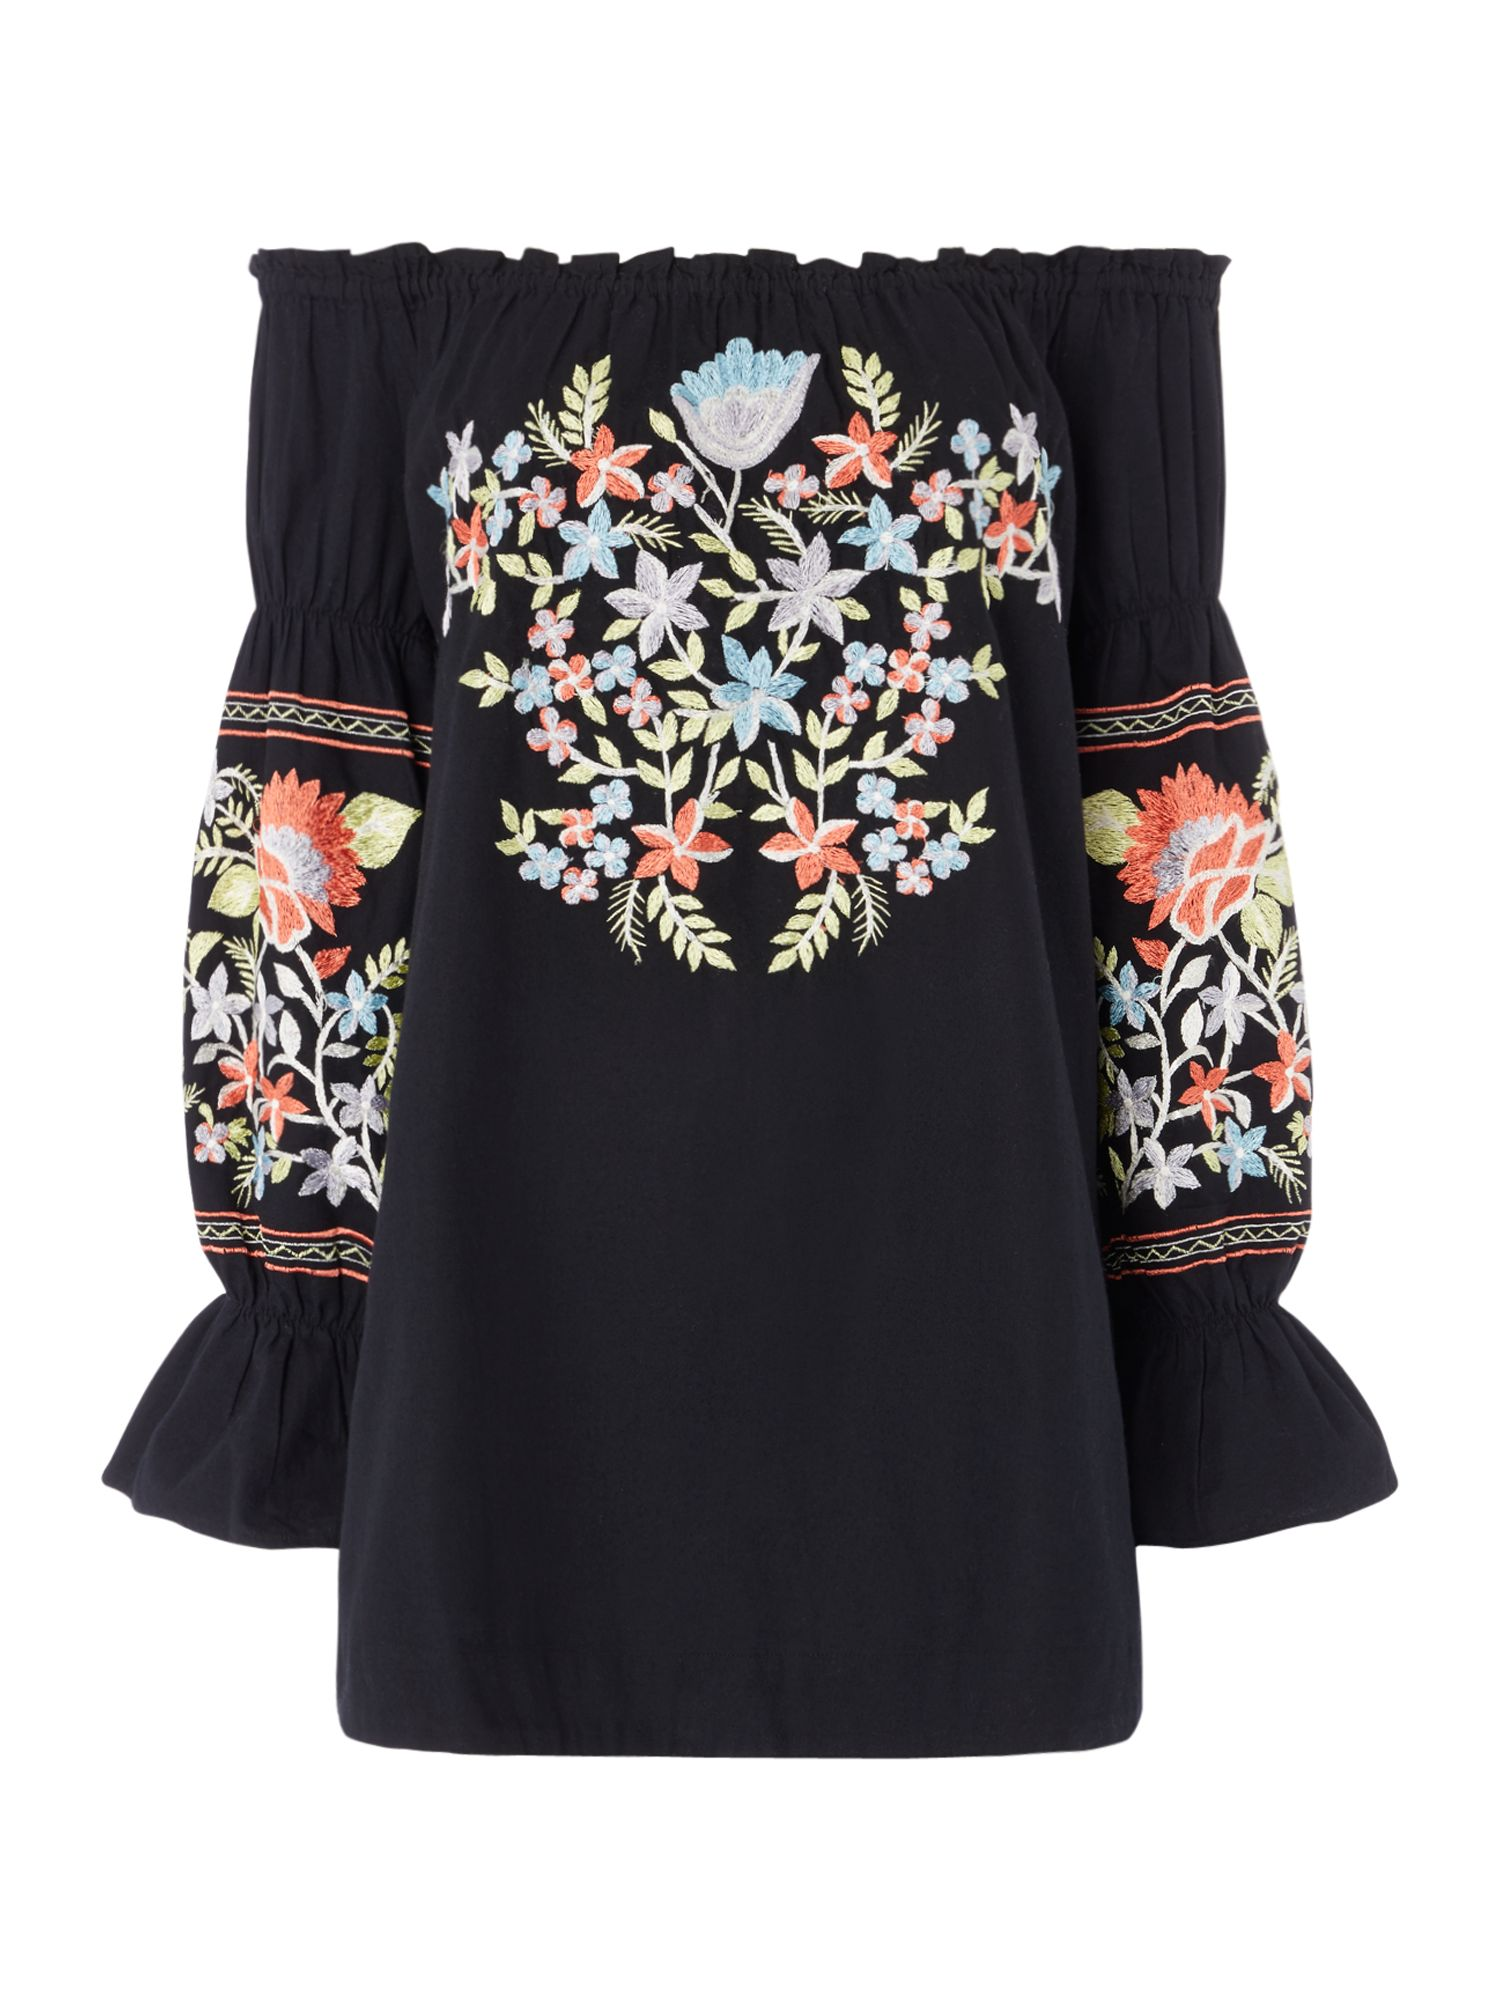 Free People Fleur De Jour Bardot Dress With Embroidery, Black